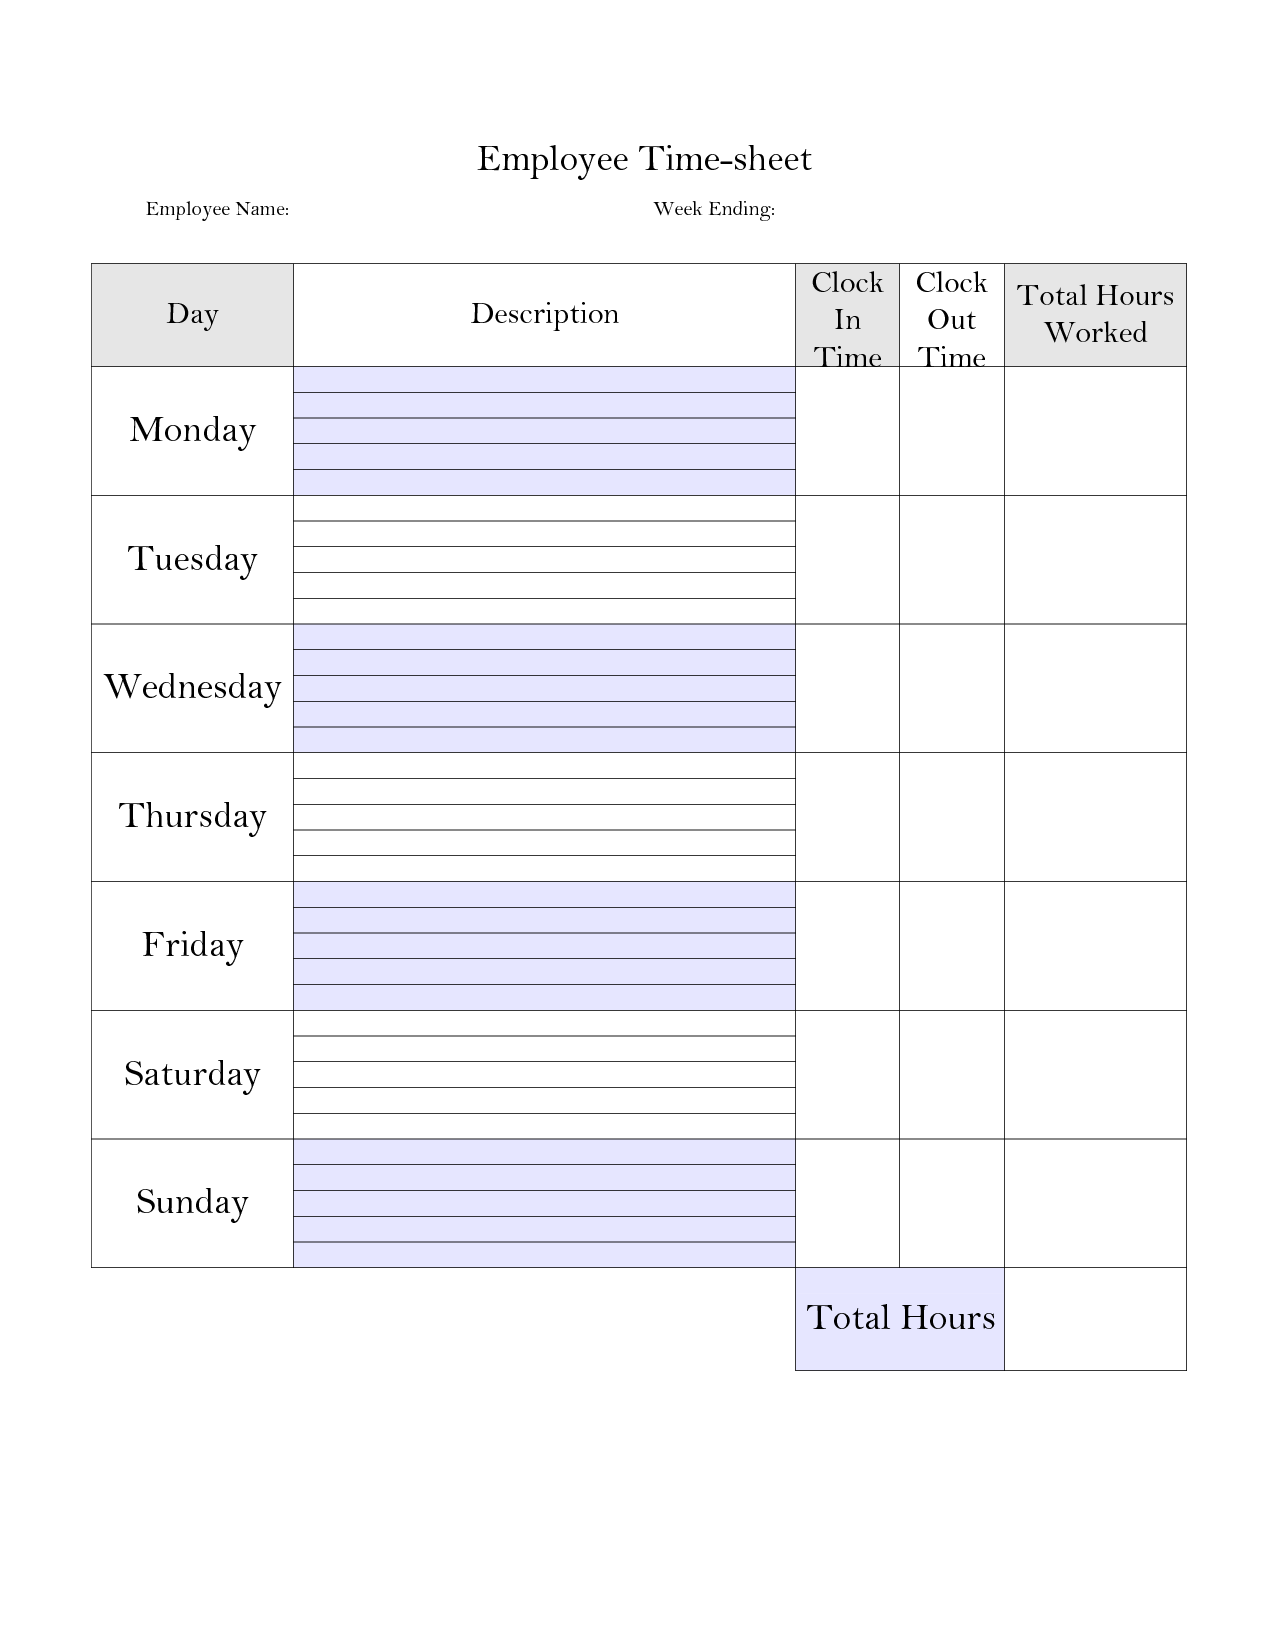 Time Sheet Samples and Printable Weekly Time Sheet Printable Timecard Time Sheets